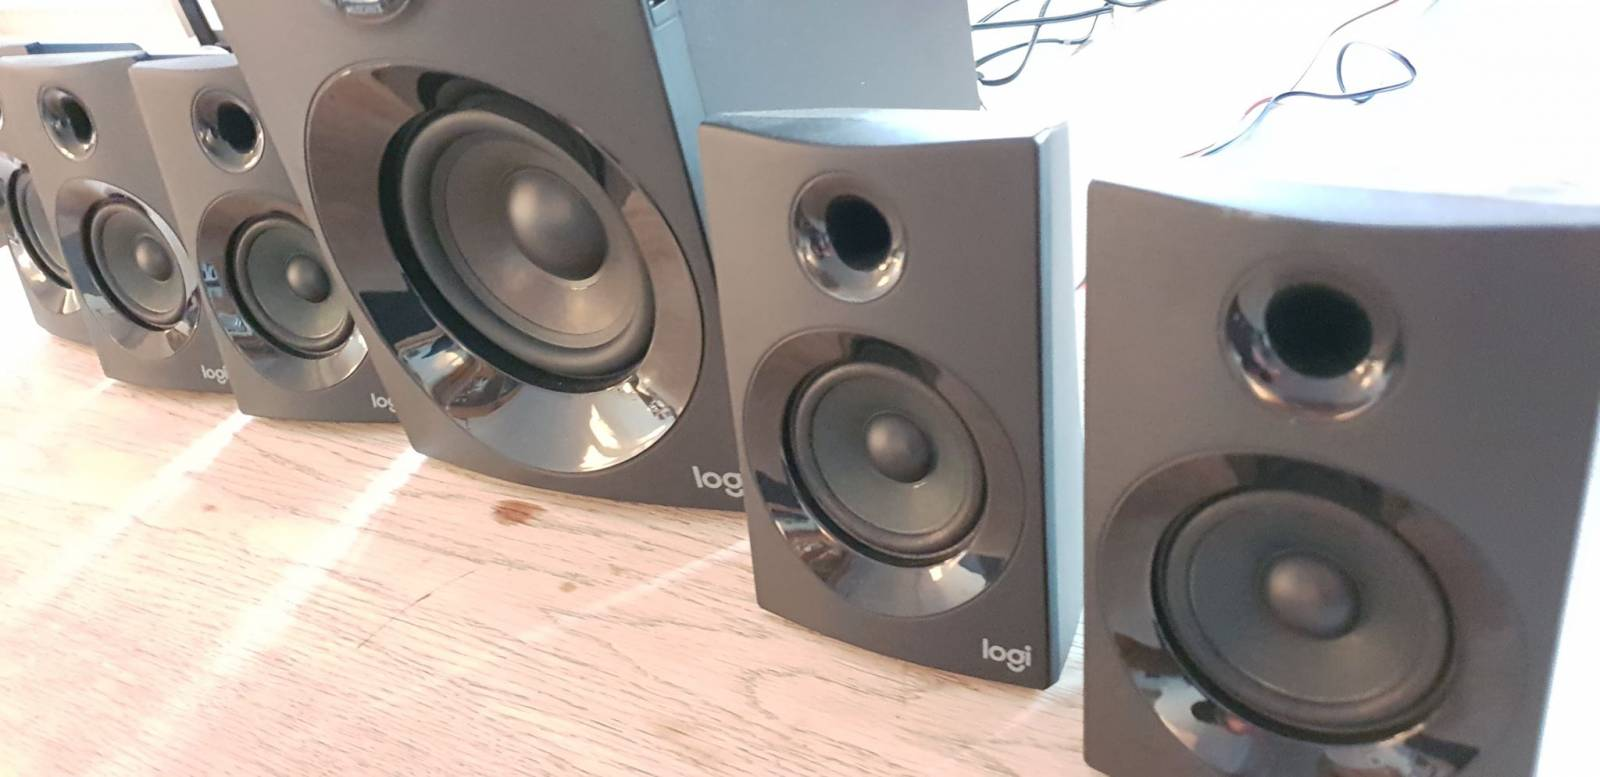 Sideview image of 5 PC speakers